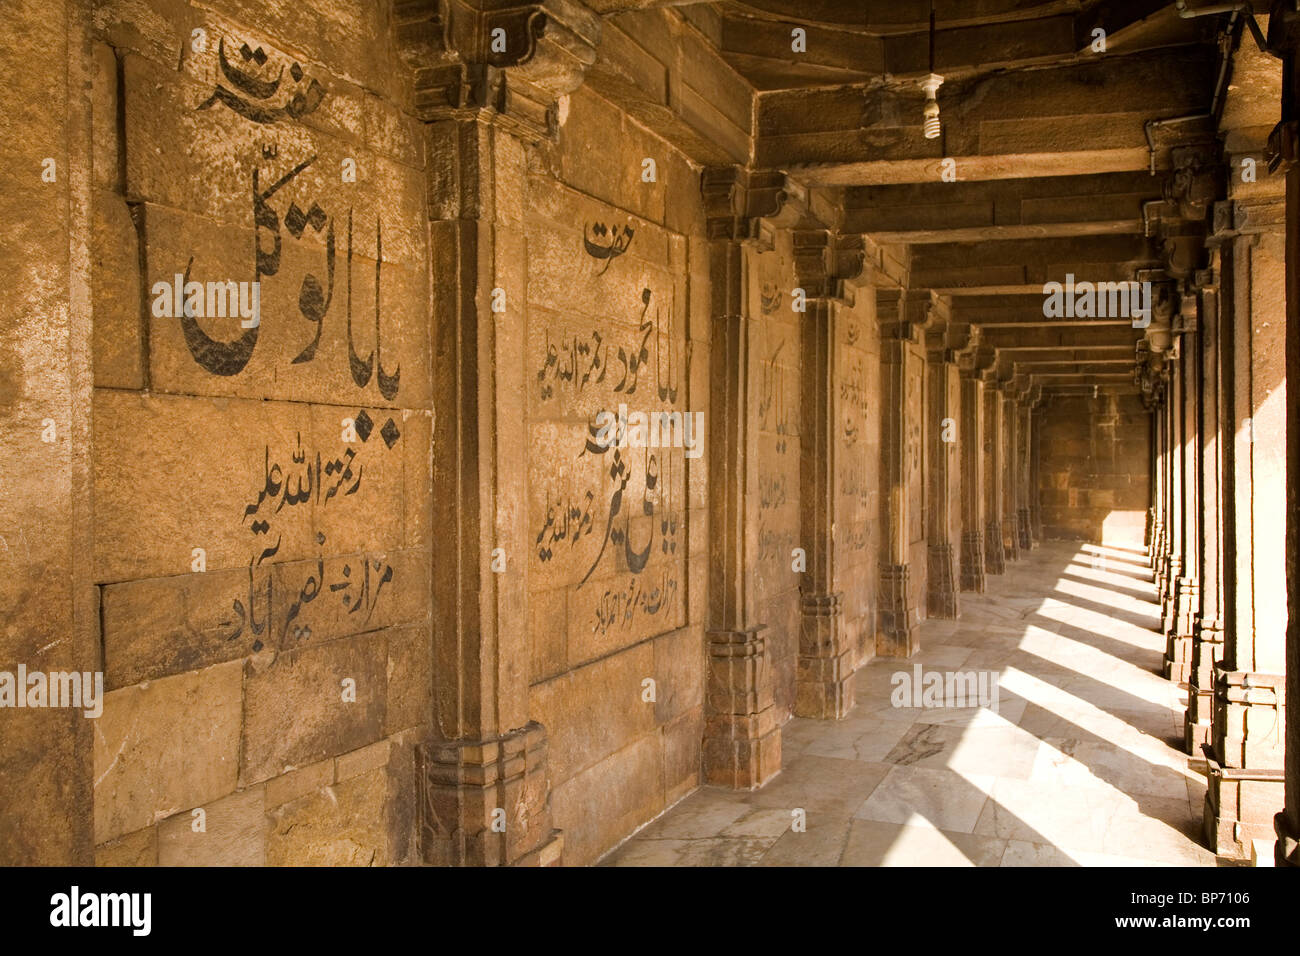 Inscriptions in the Jama Masjid (Friday Mosque) in Ahmedabad, Gujarat, India. - Stock Image